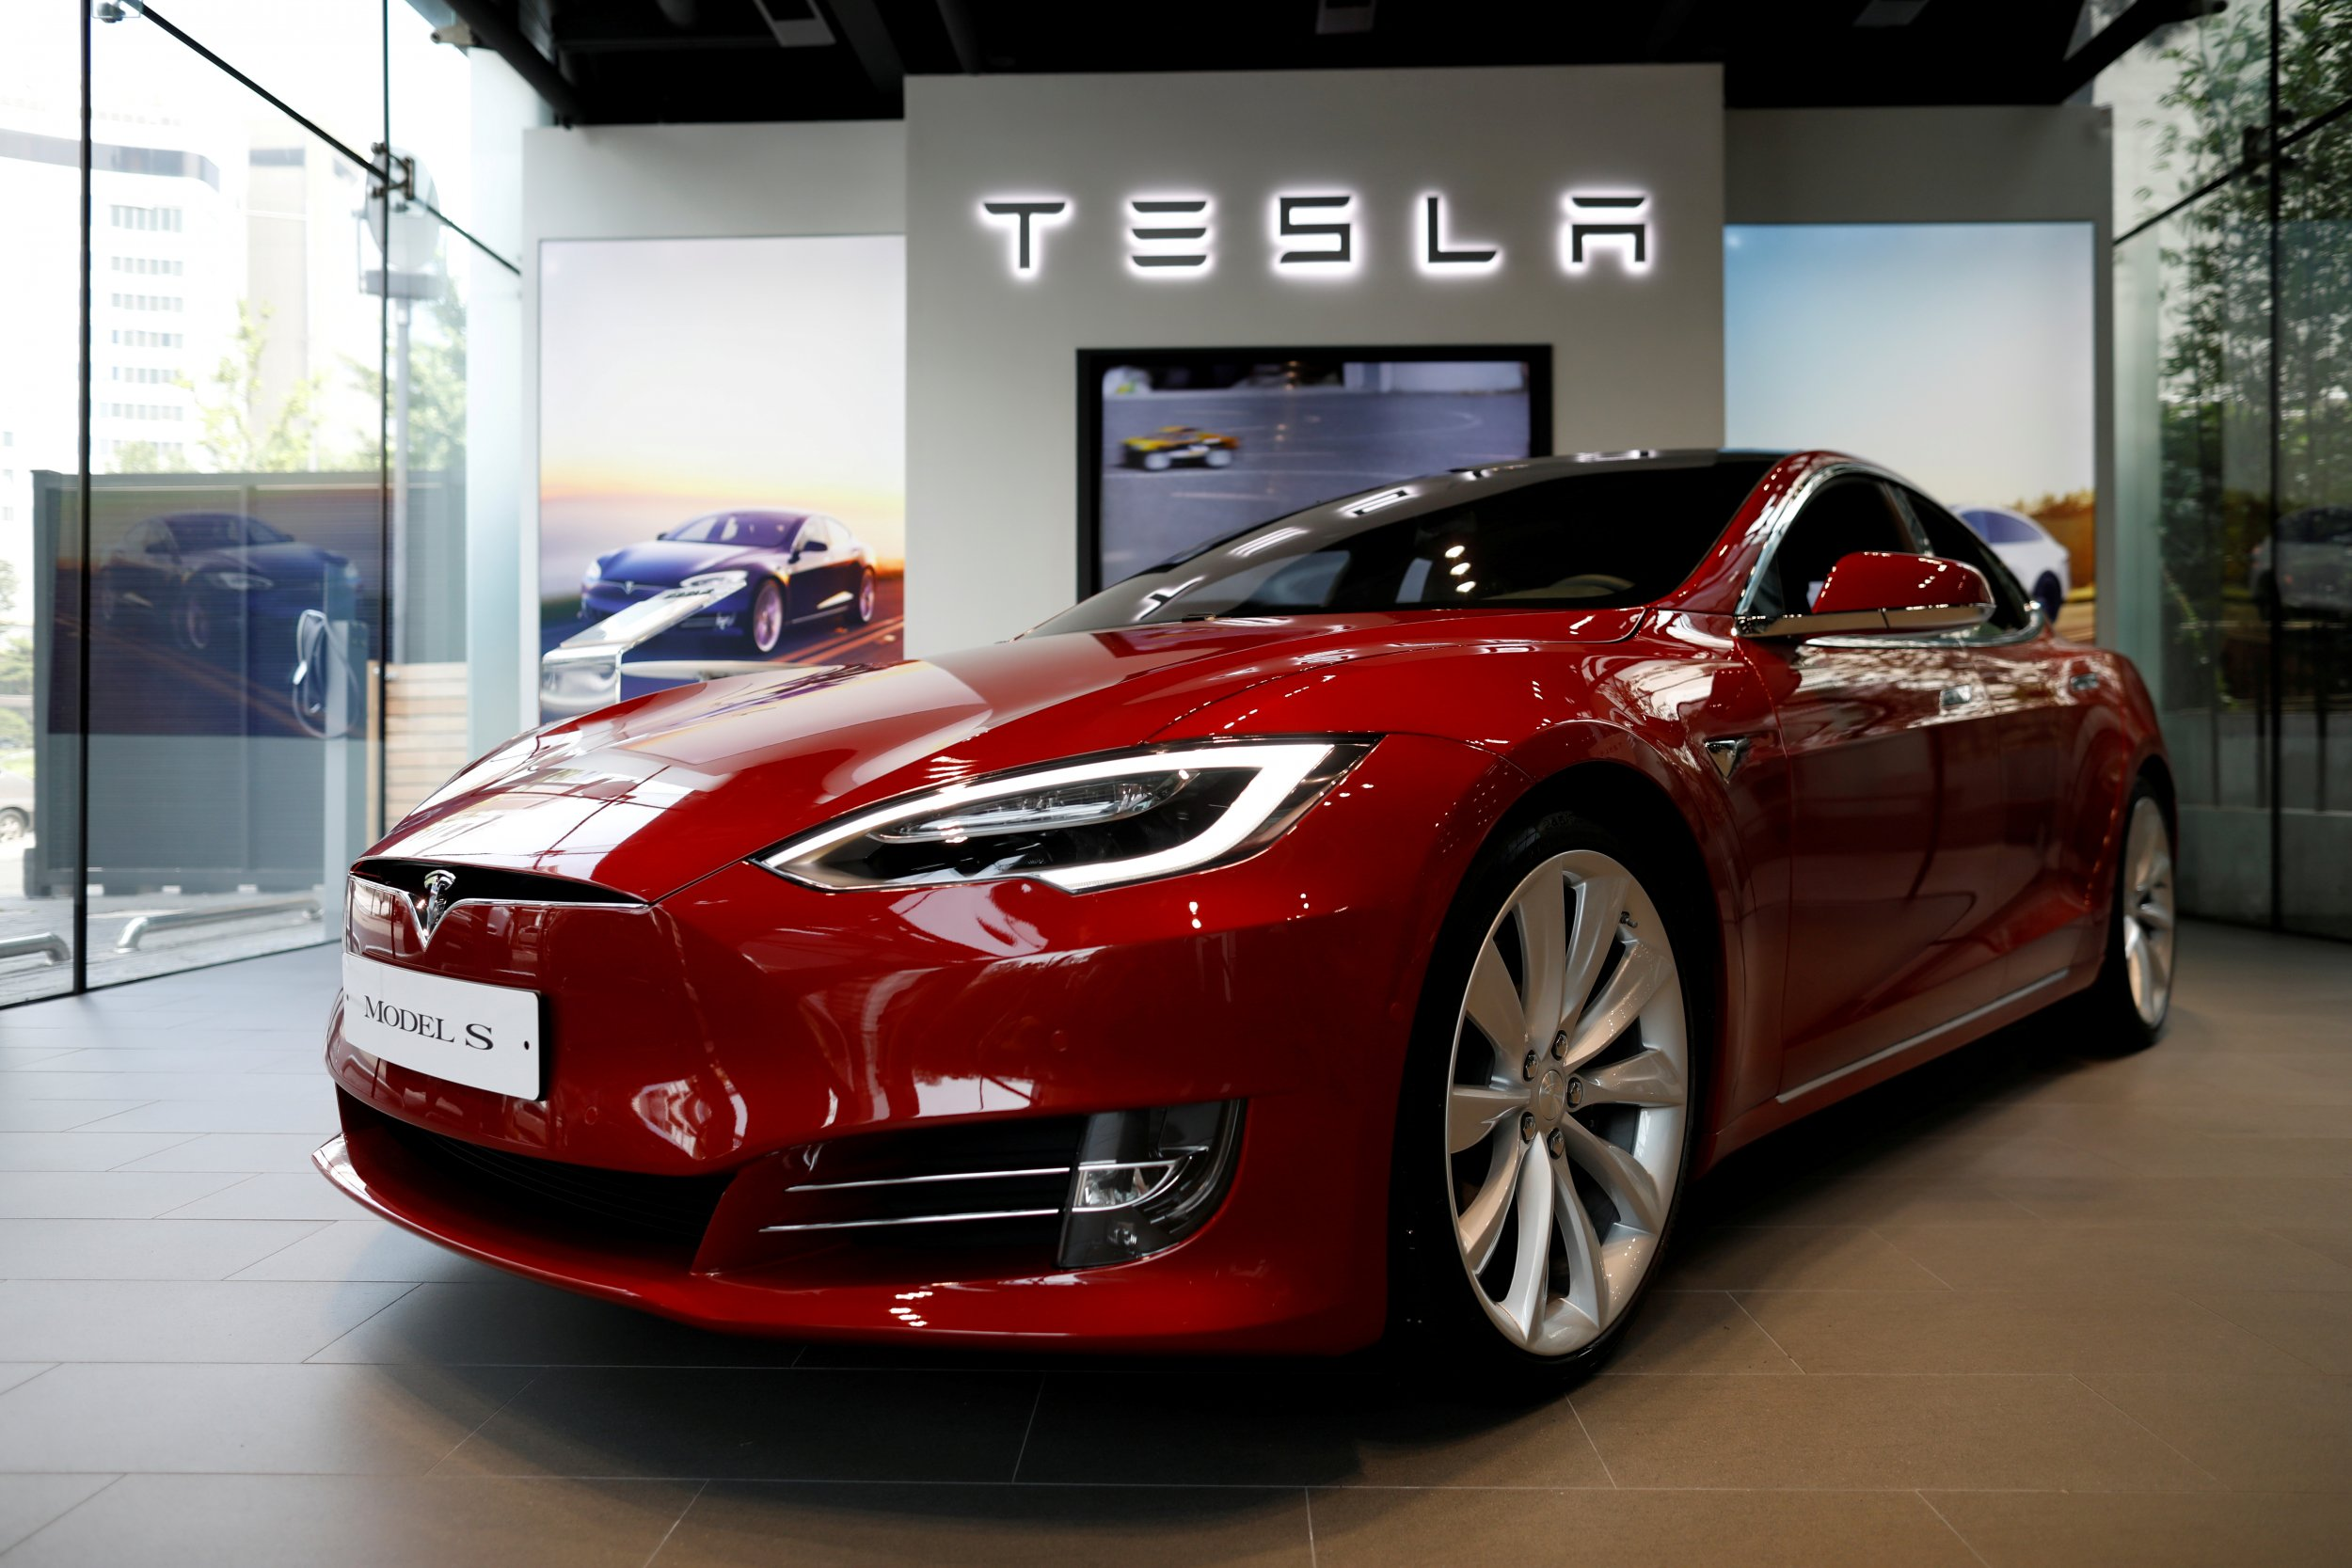 tesla hack model s key fobs could be cloned in seconds to. Black Bedroom Furniture Sets. Home Design Ideas